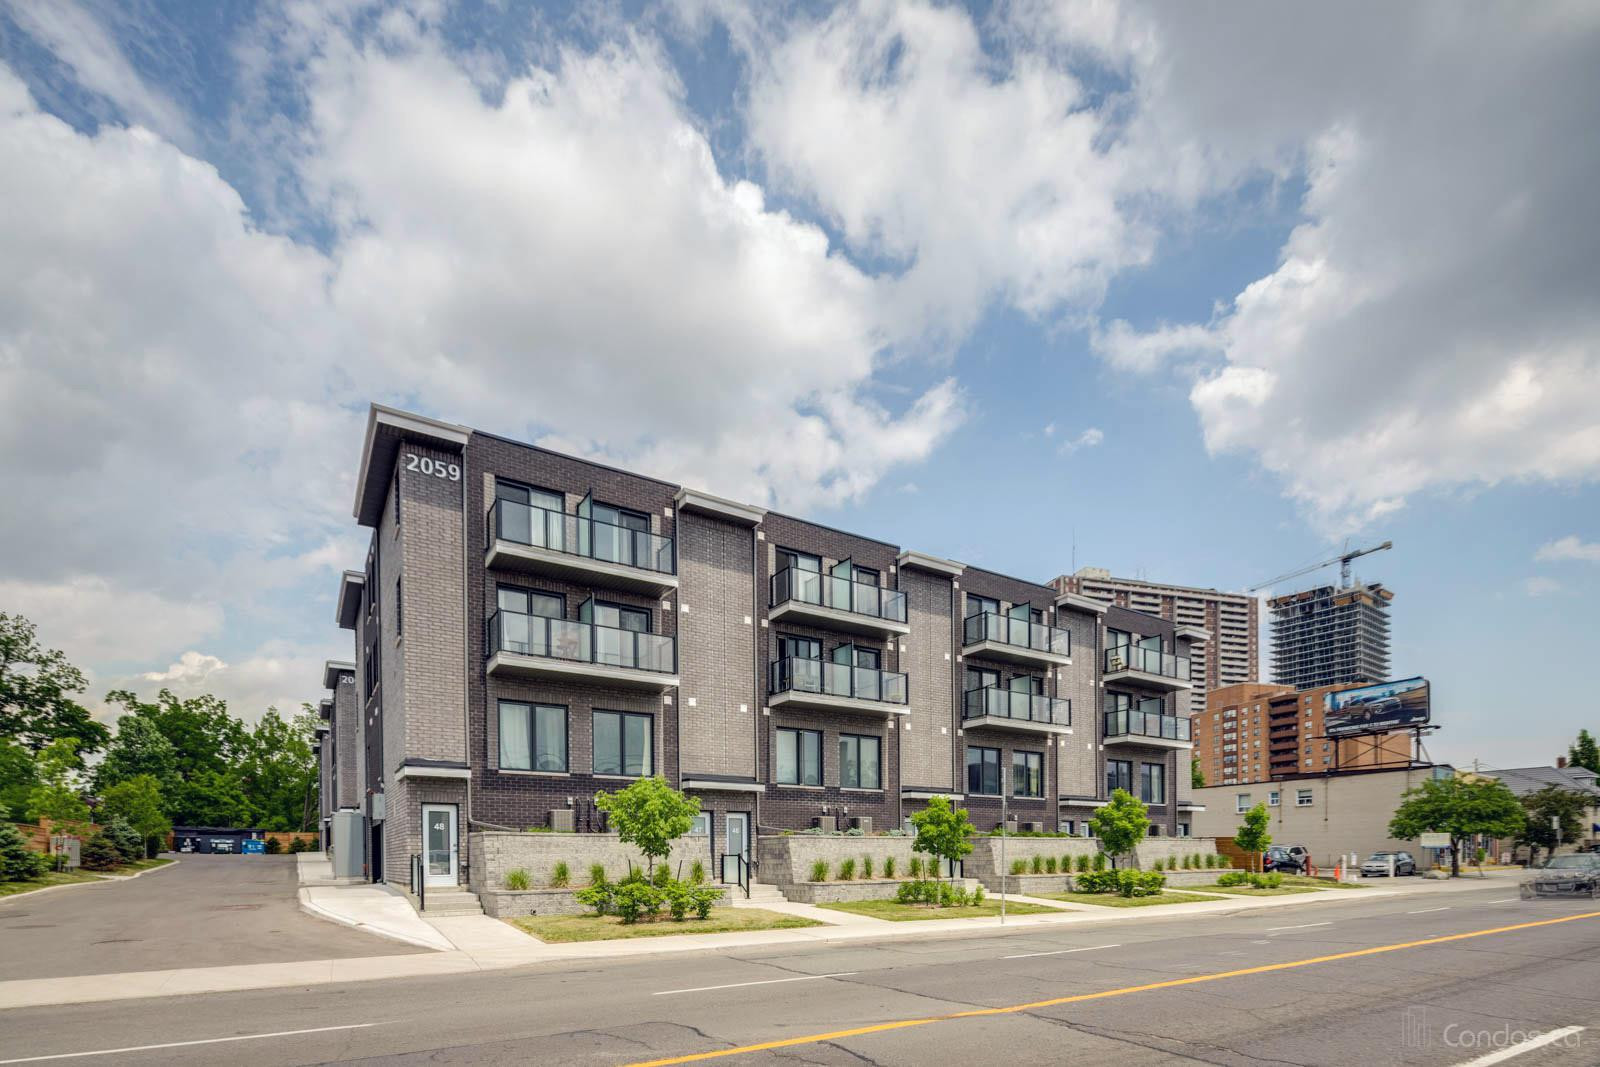 W Towns at 2061 Weston Rd, Toronto 0